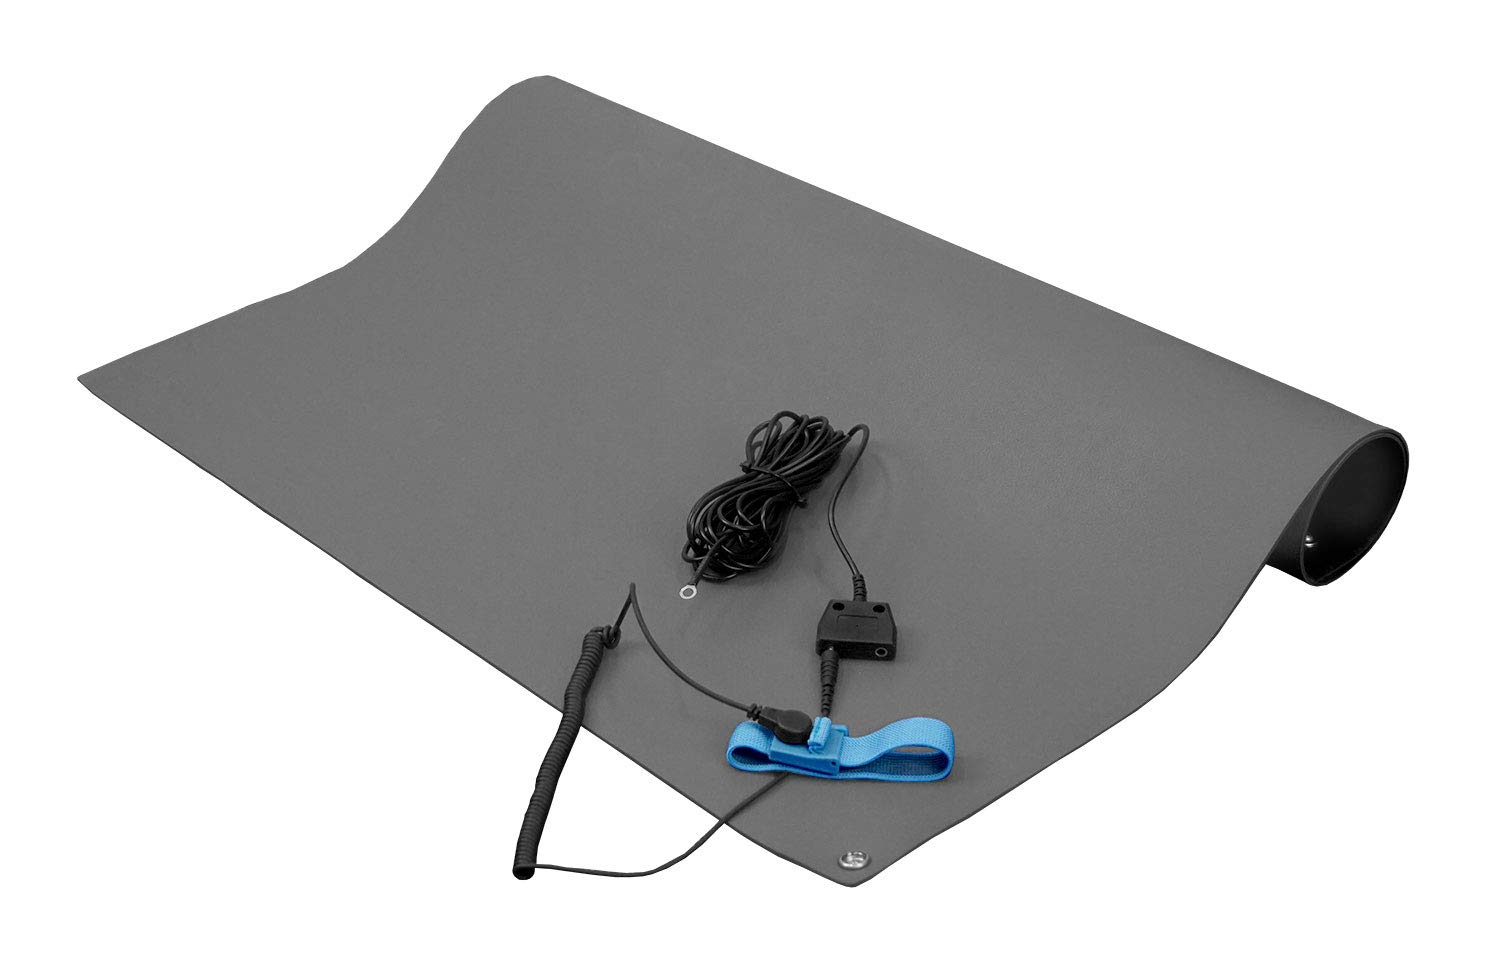 StaticTech Textured ESD Bombing new work Anti-Static Mat Includes Table Kit Cheap sale